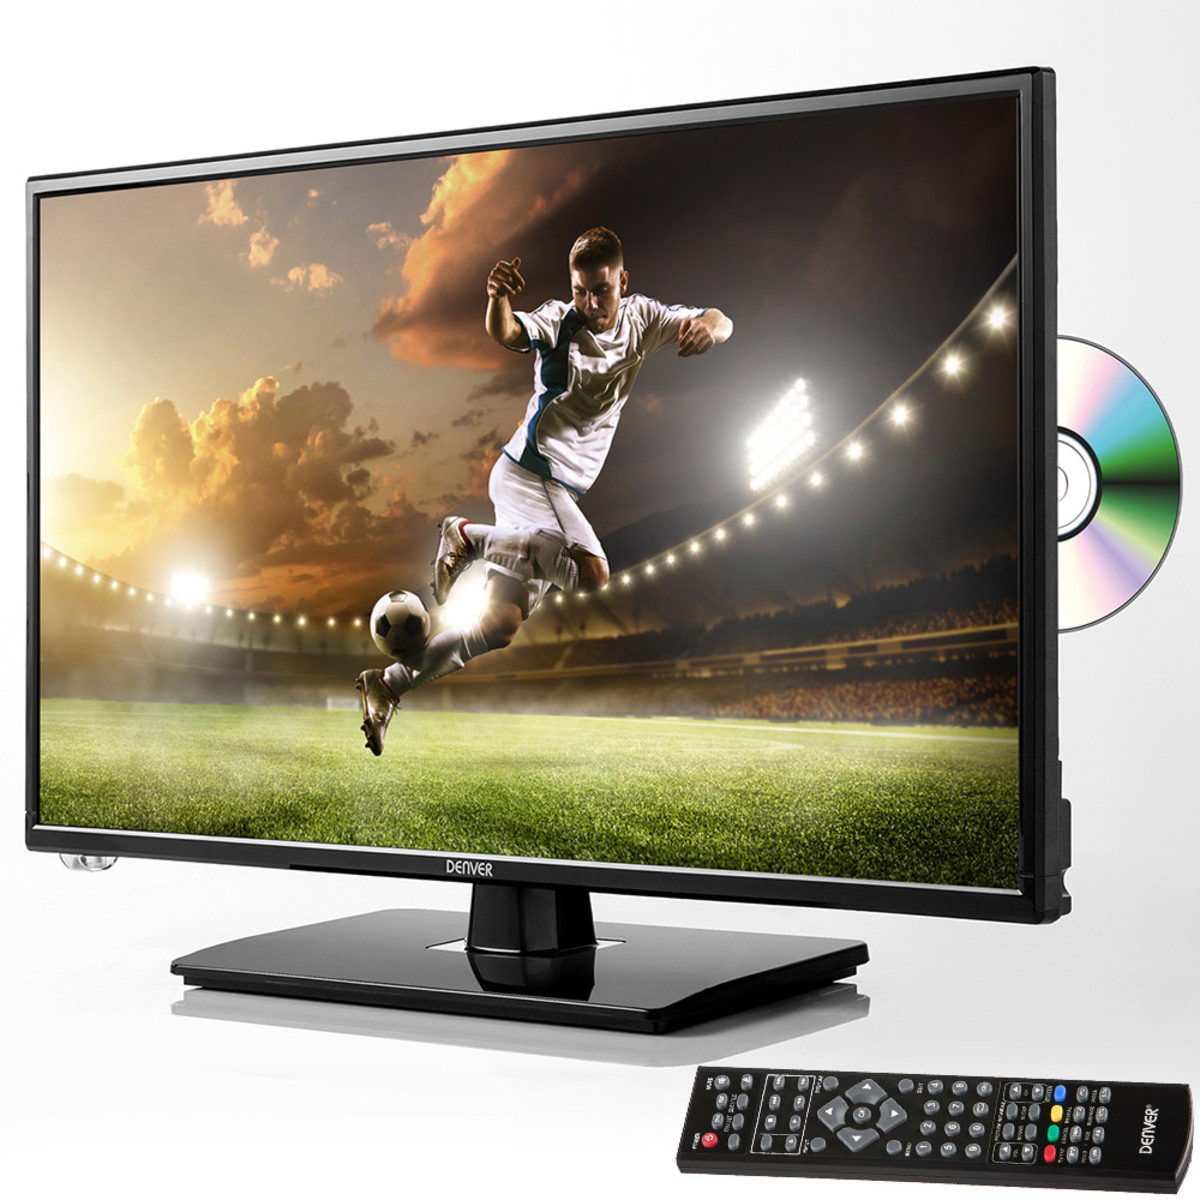 "Bild 1 von Denver 23,8"" LED-TV + DVD-Player mit Triple Tuner"